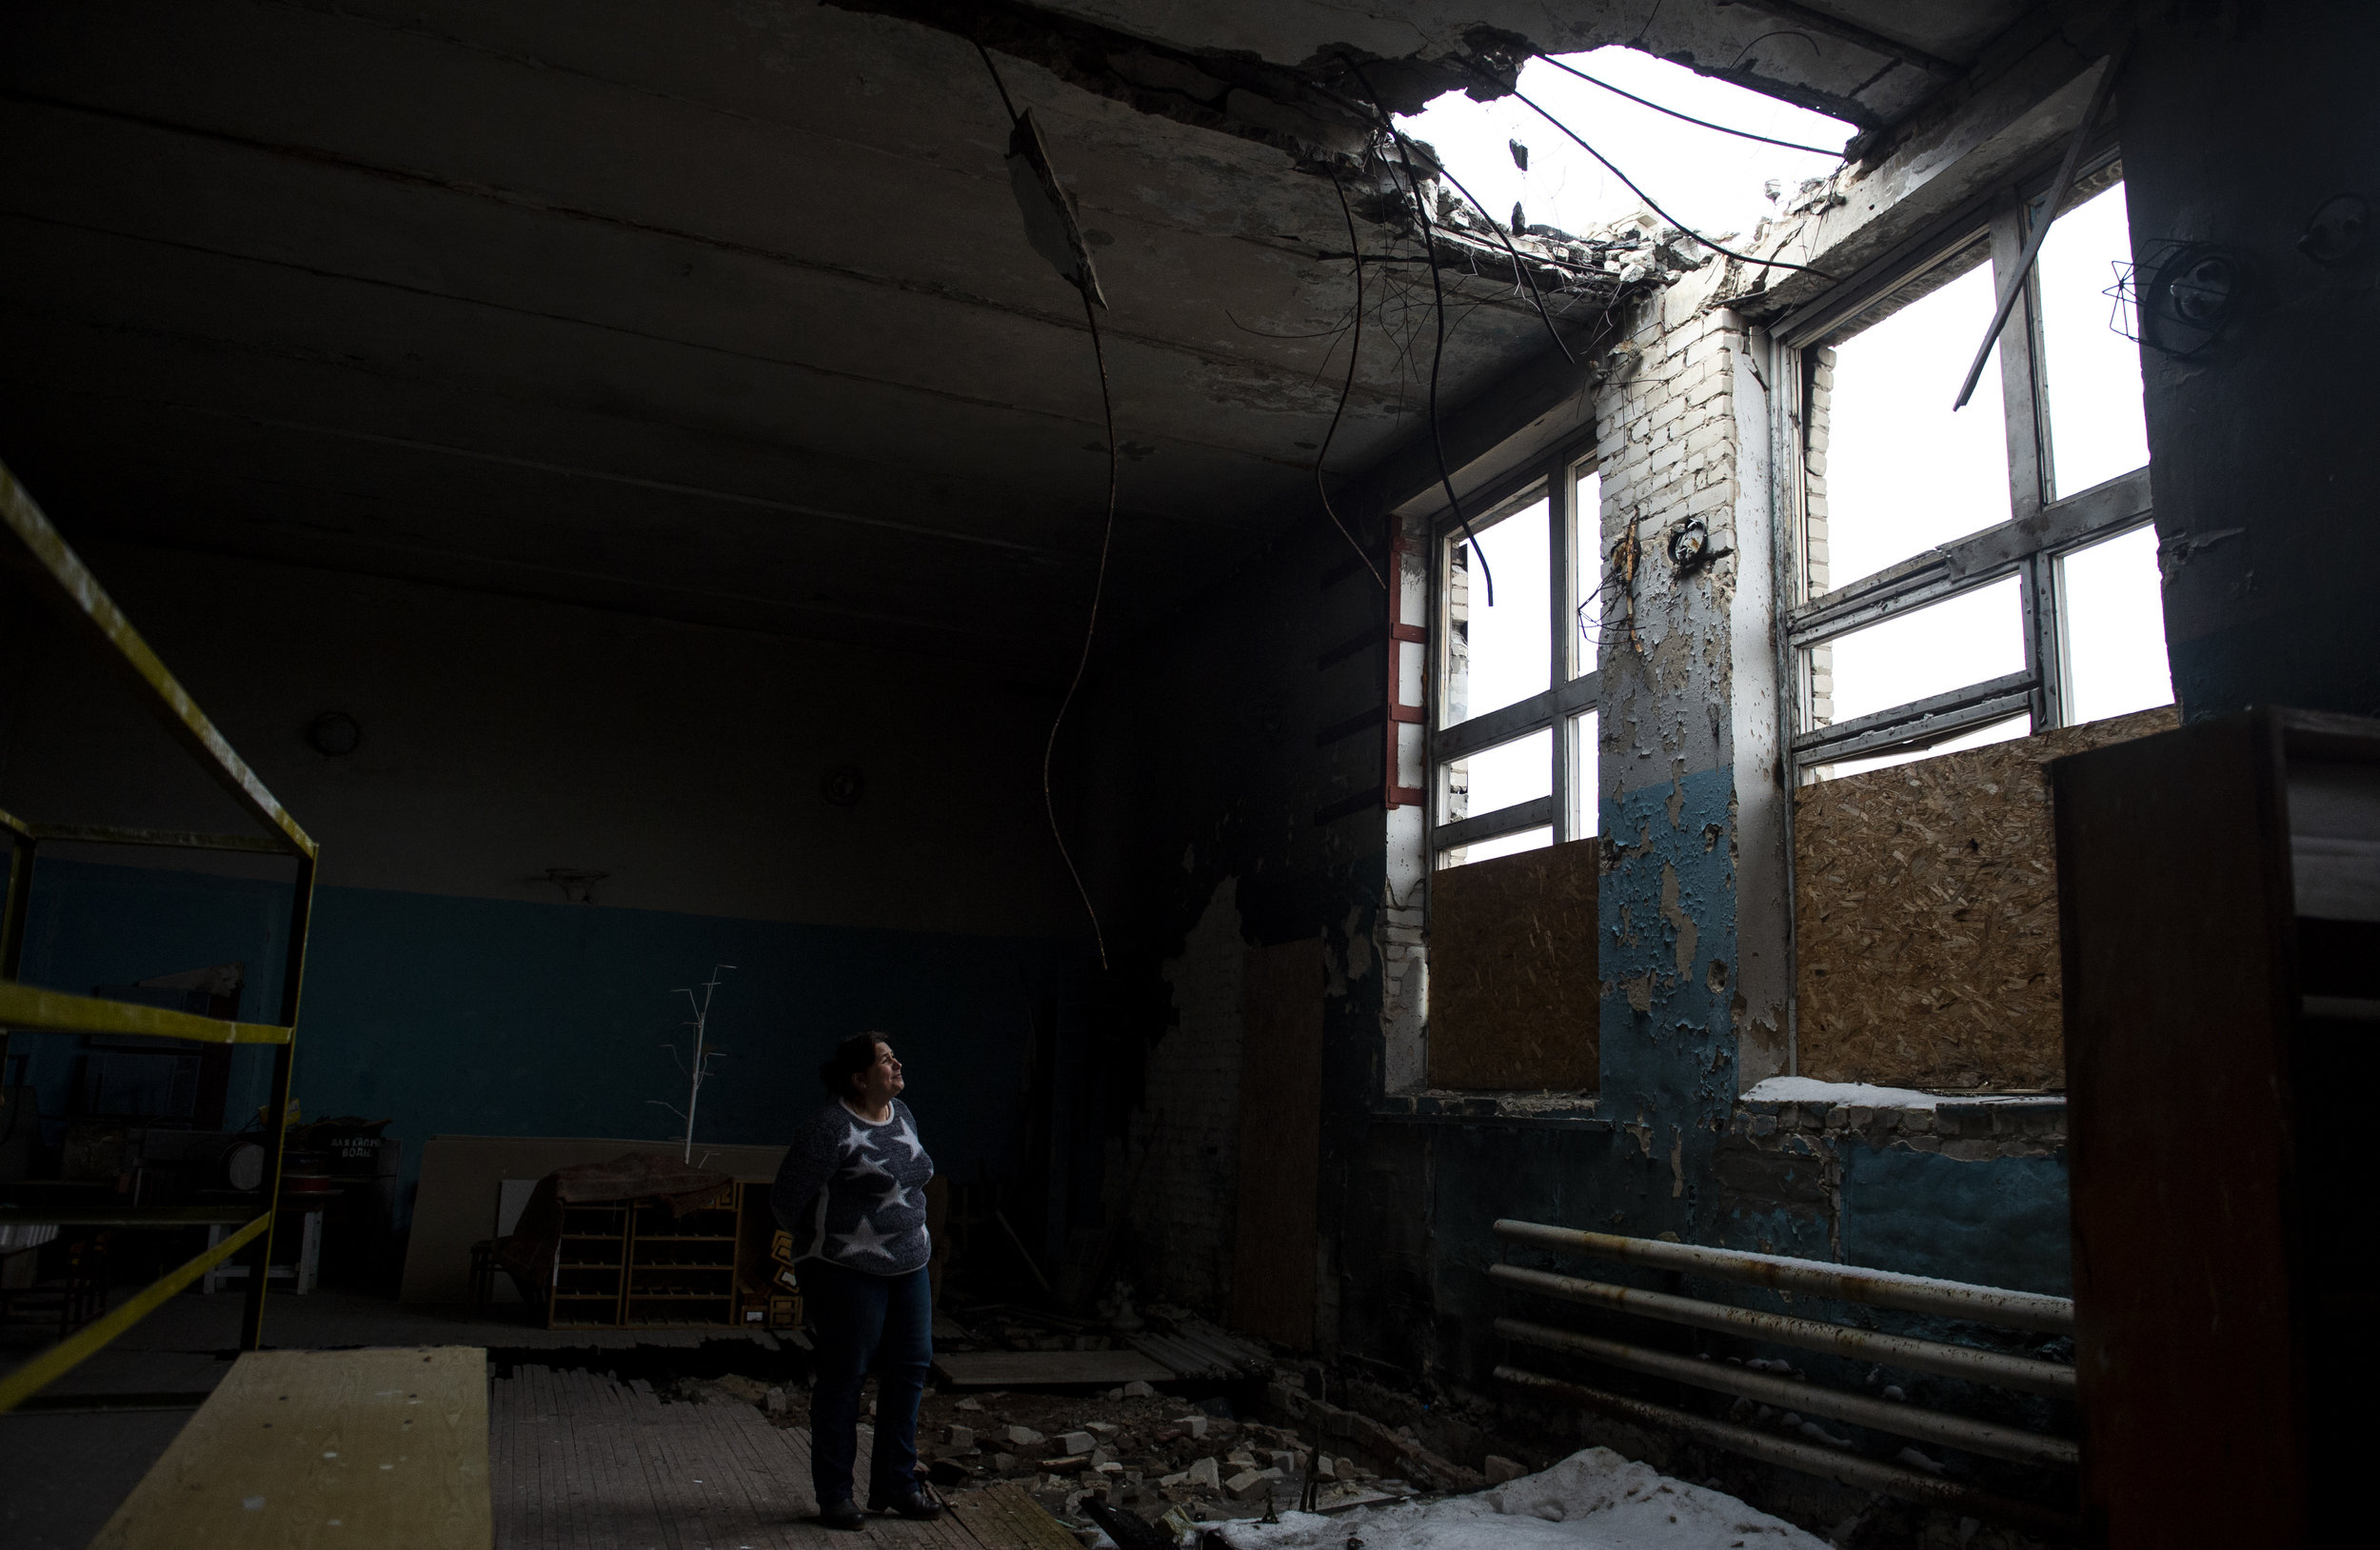 A school in Krimsky bears the ever present danger of shelling on the frontlines of the conflict. The school still operates thought shelling is a frequent occurrence in the area.